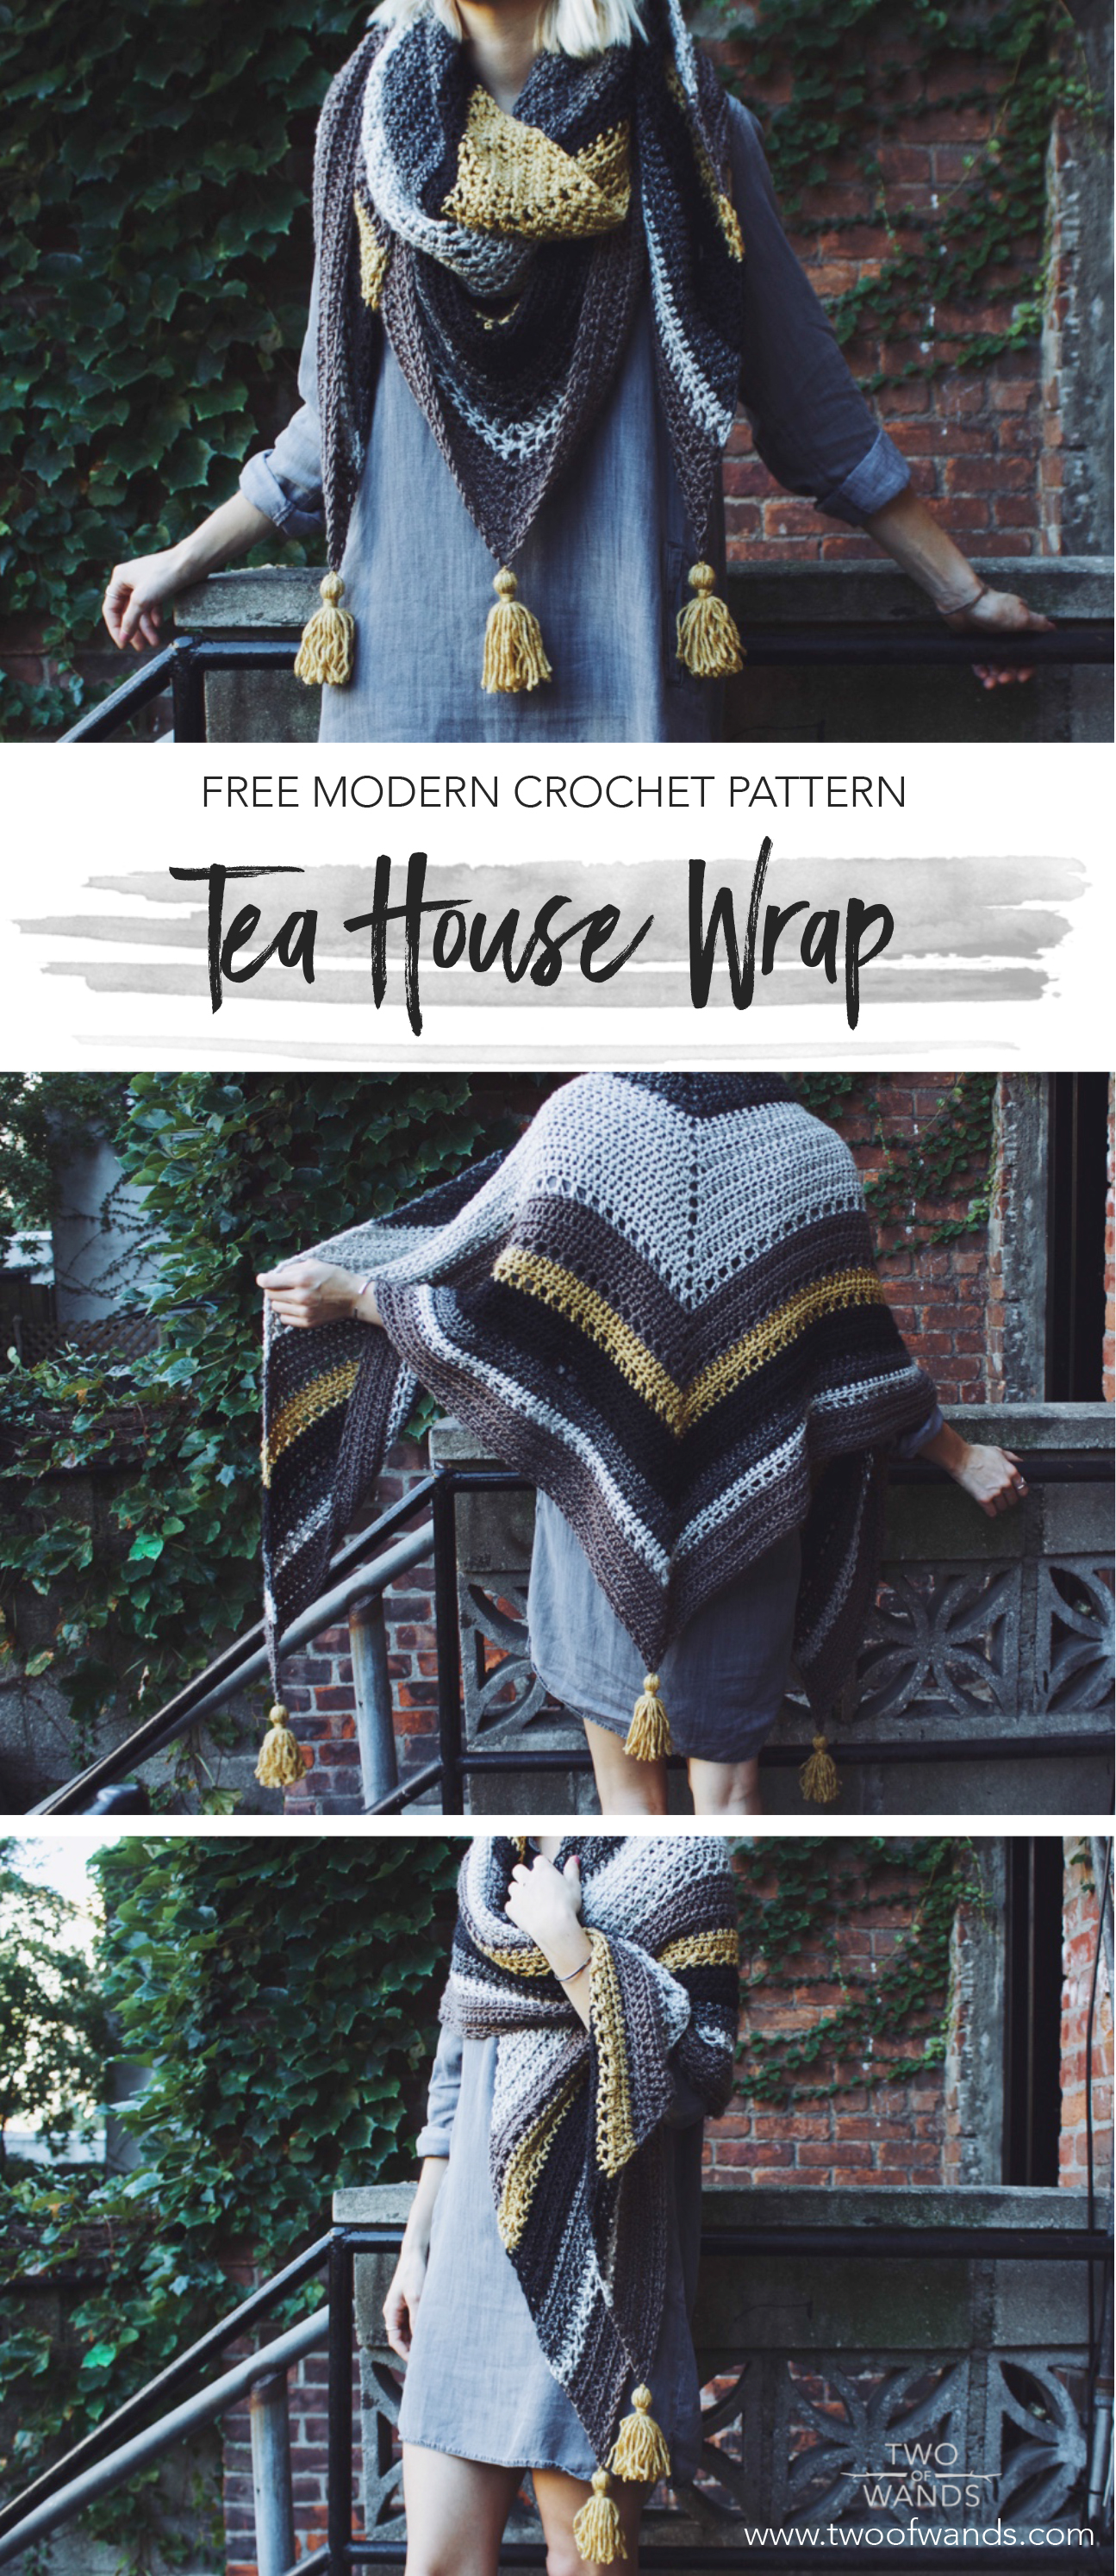 Tea House Wrap Pattern by Two of Wands